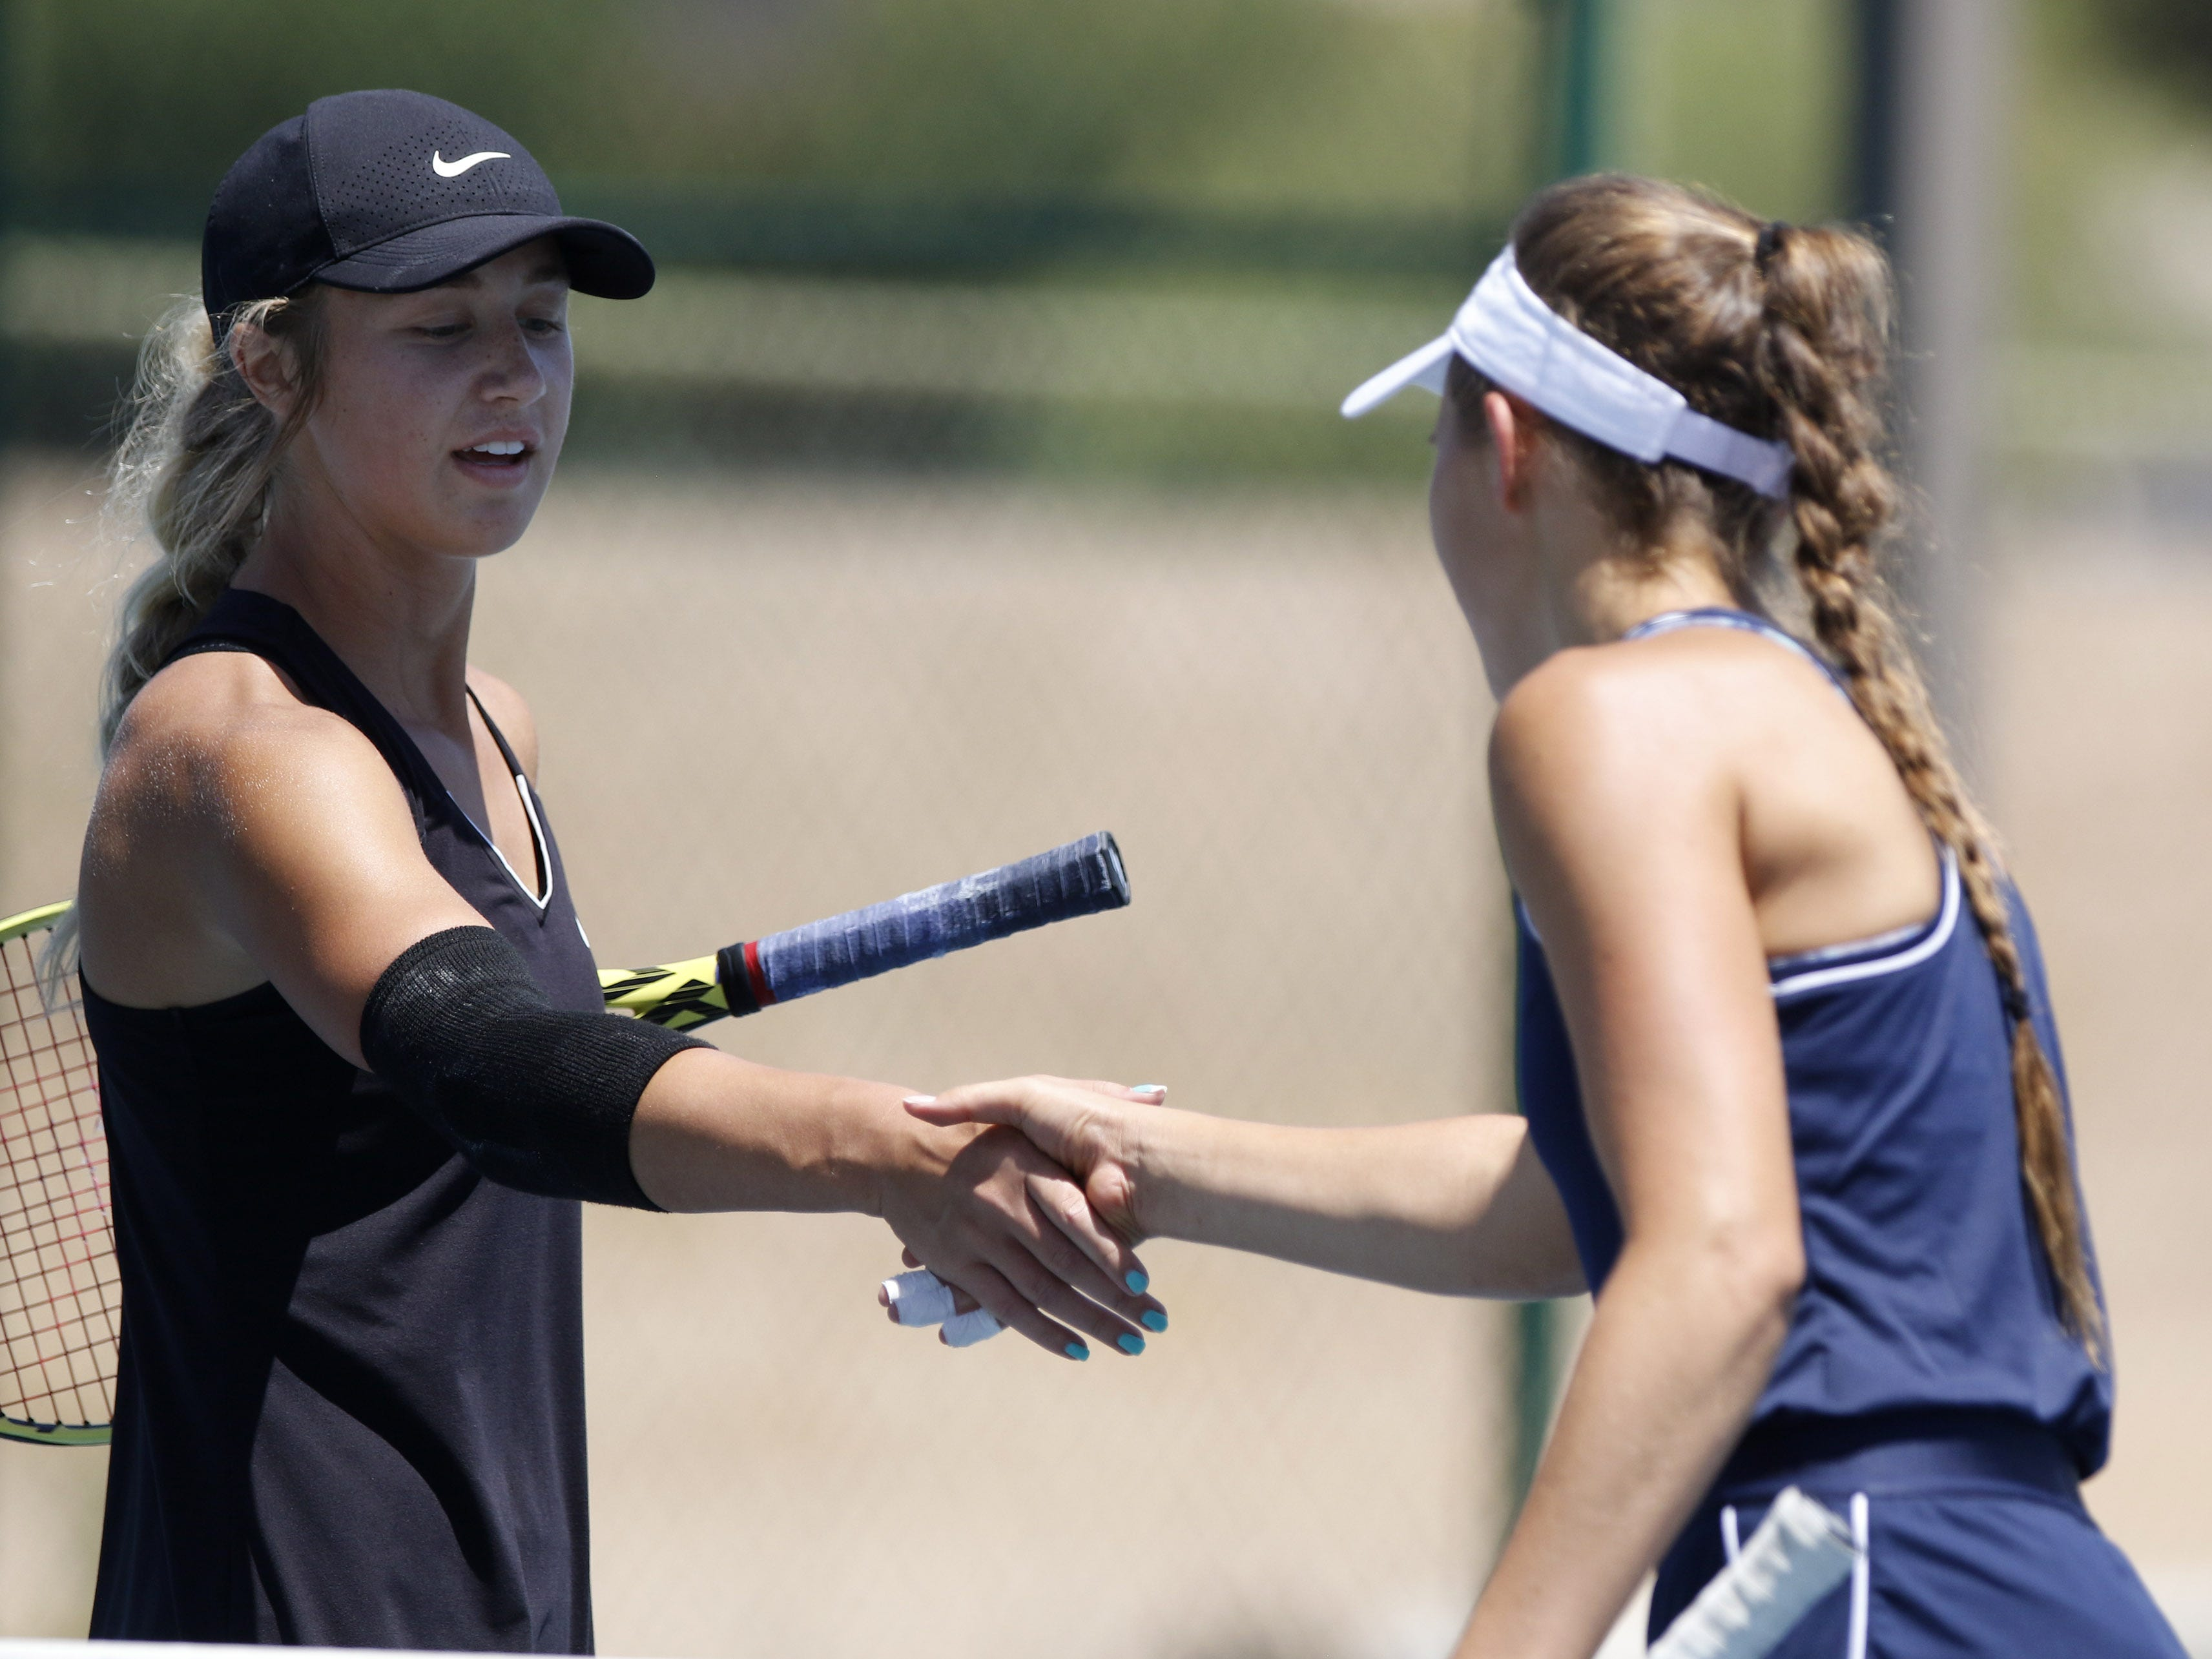 Thatcher's Lacie Whitmer shakes hands with Pusch Ridge's Sofia Fetsis after their match during the Division III tennis team state championship in Glendale, Arizona, May 04, 2019.